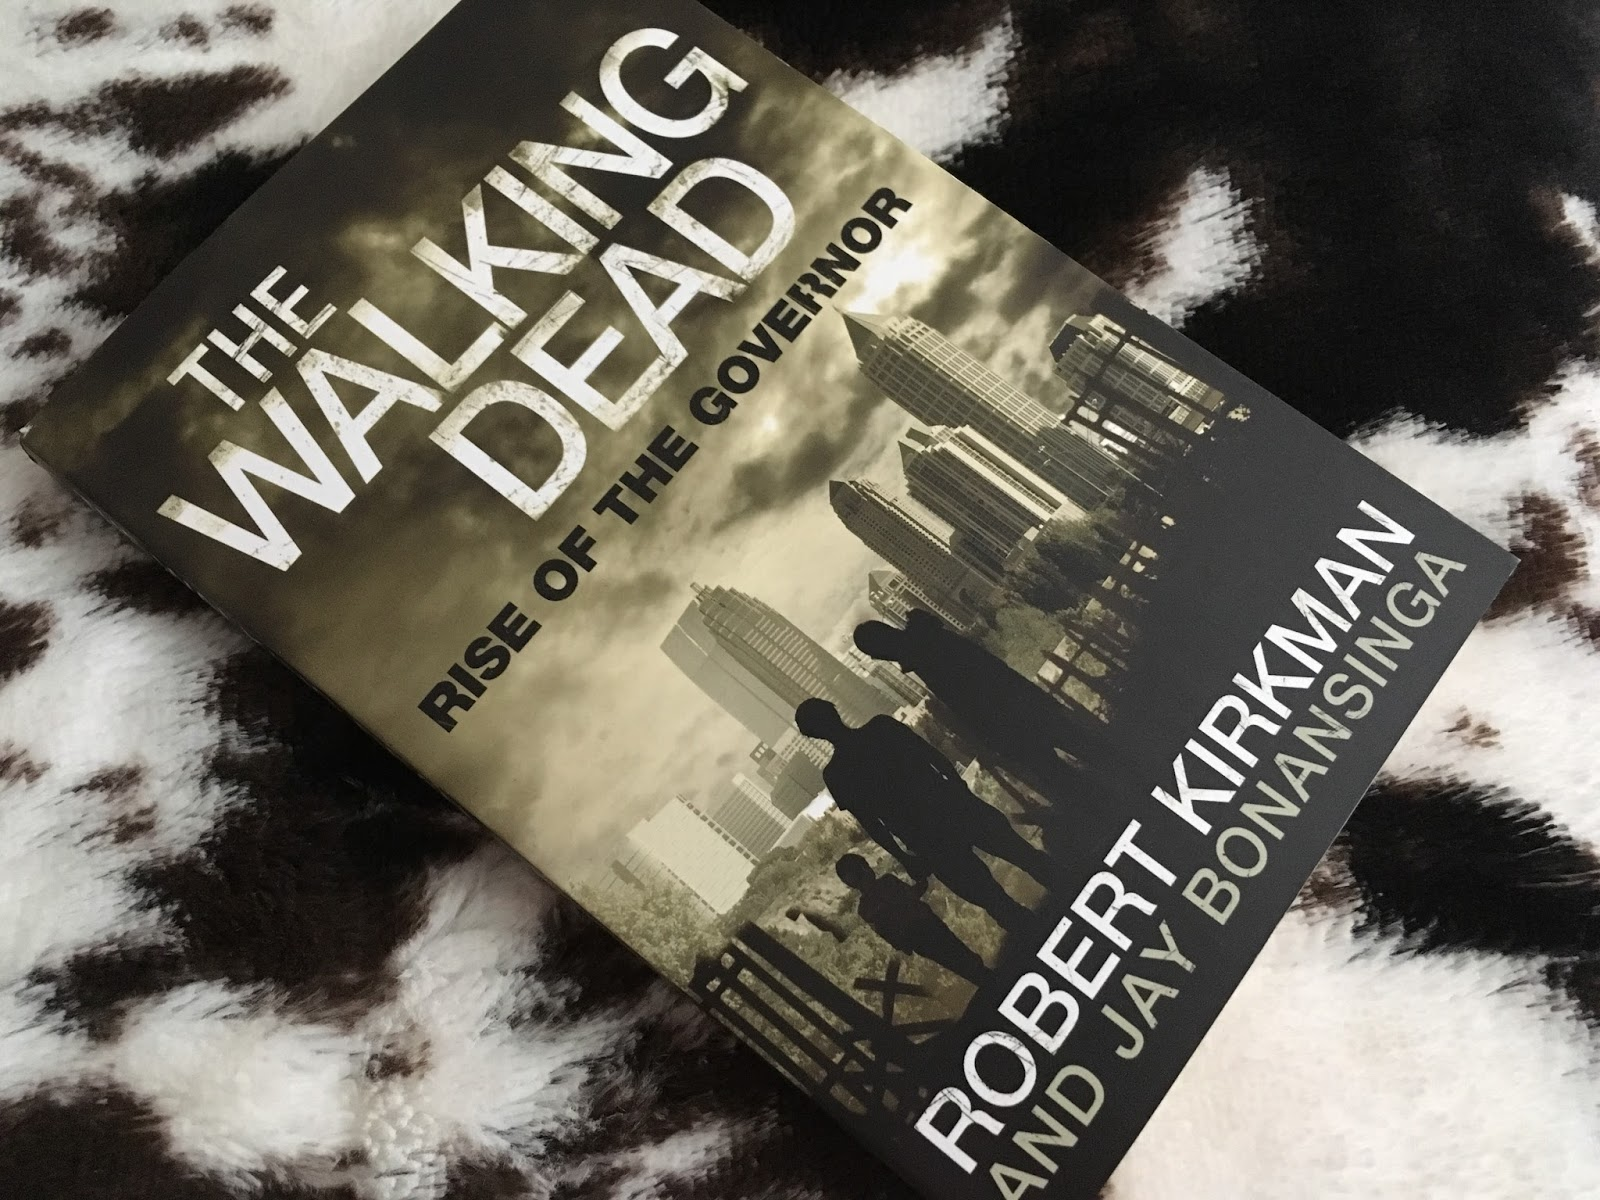 ... Nikki for a trip into the apocalyptic landscape of a zombie ravaged  Georgia in the form of my novel choice – 'The Walking Dead – Rise of the  Governor'.